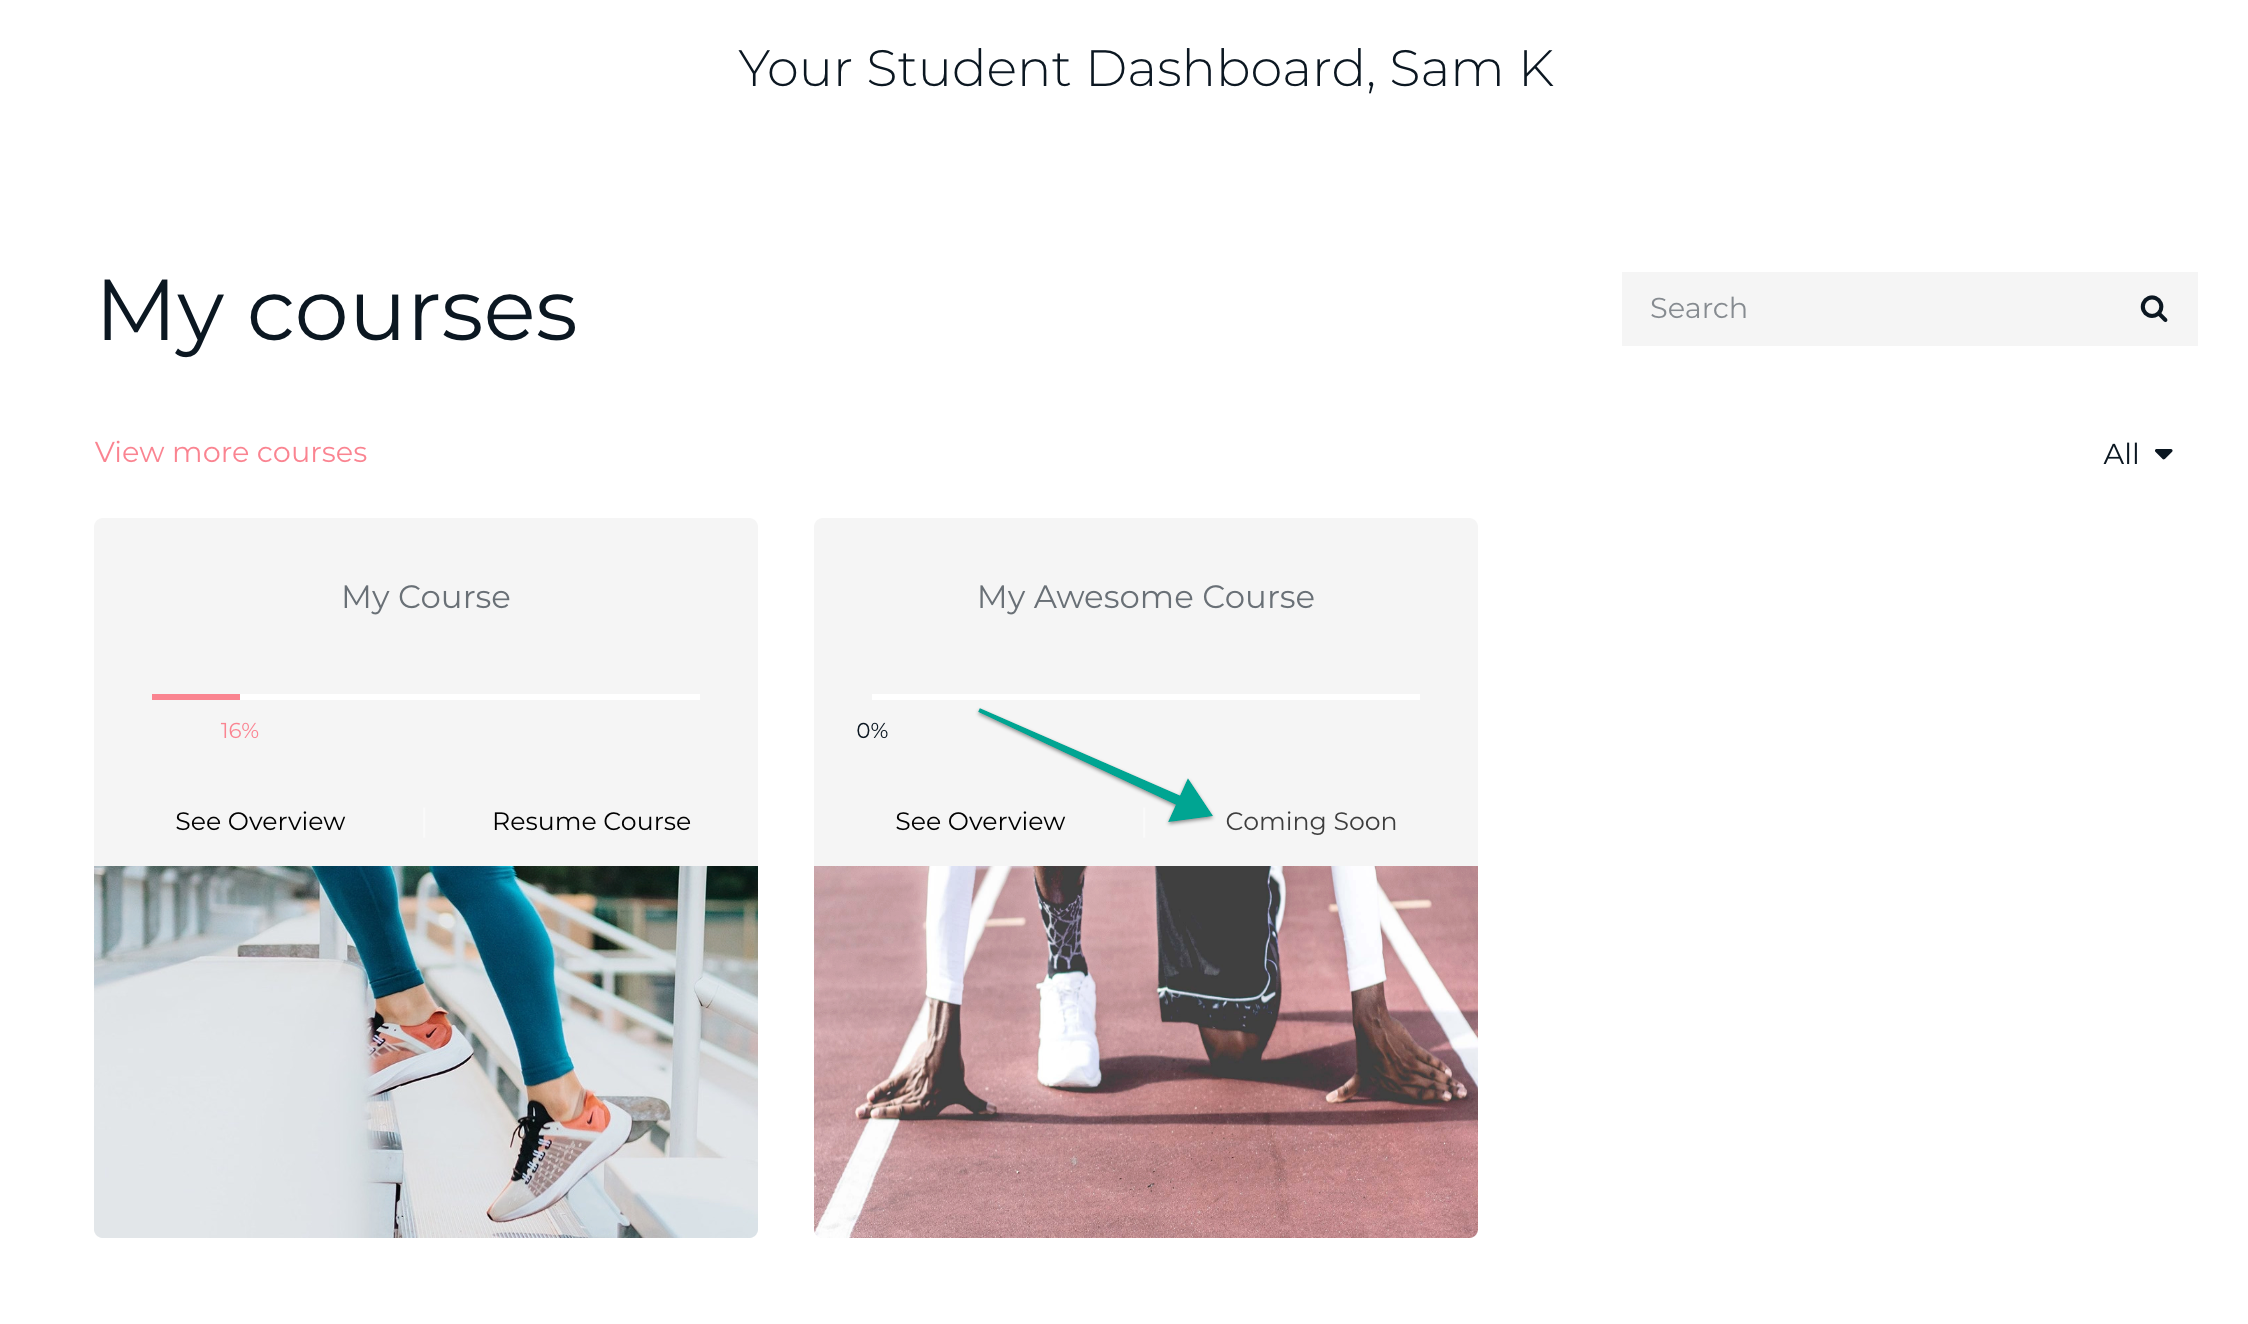 Student_dashboard_coming_soon_text.png